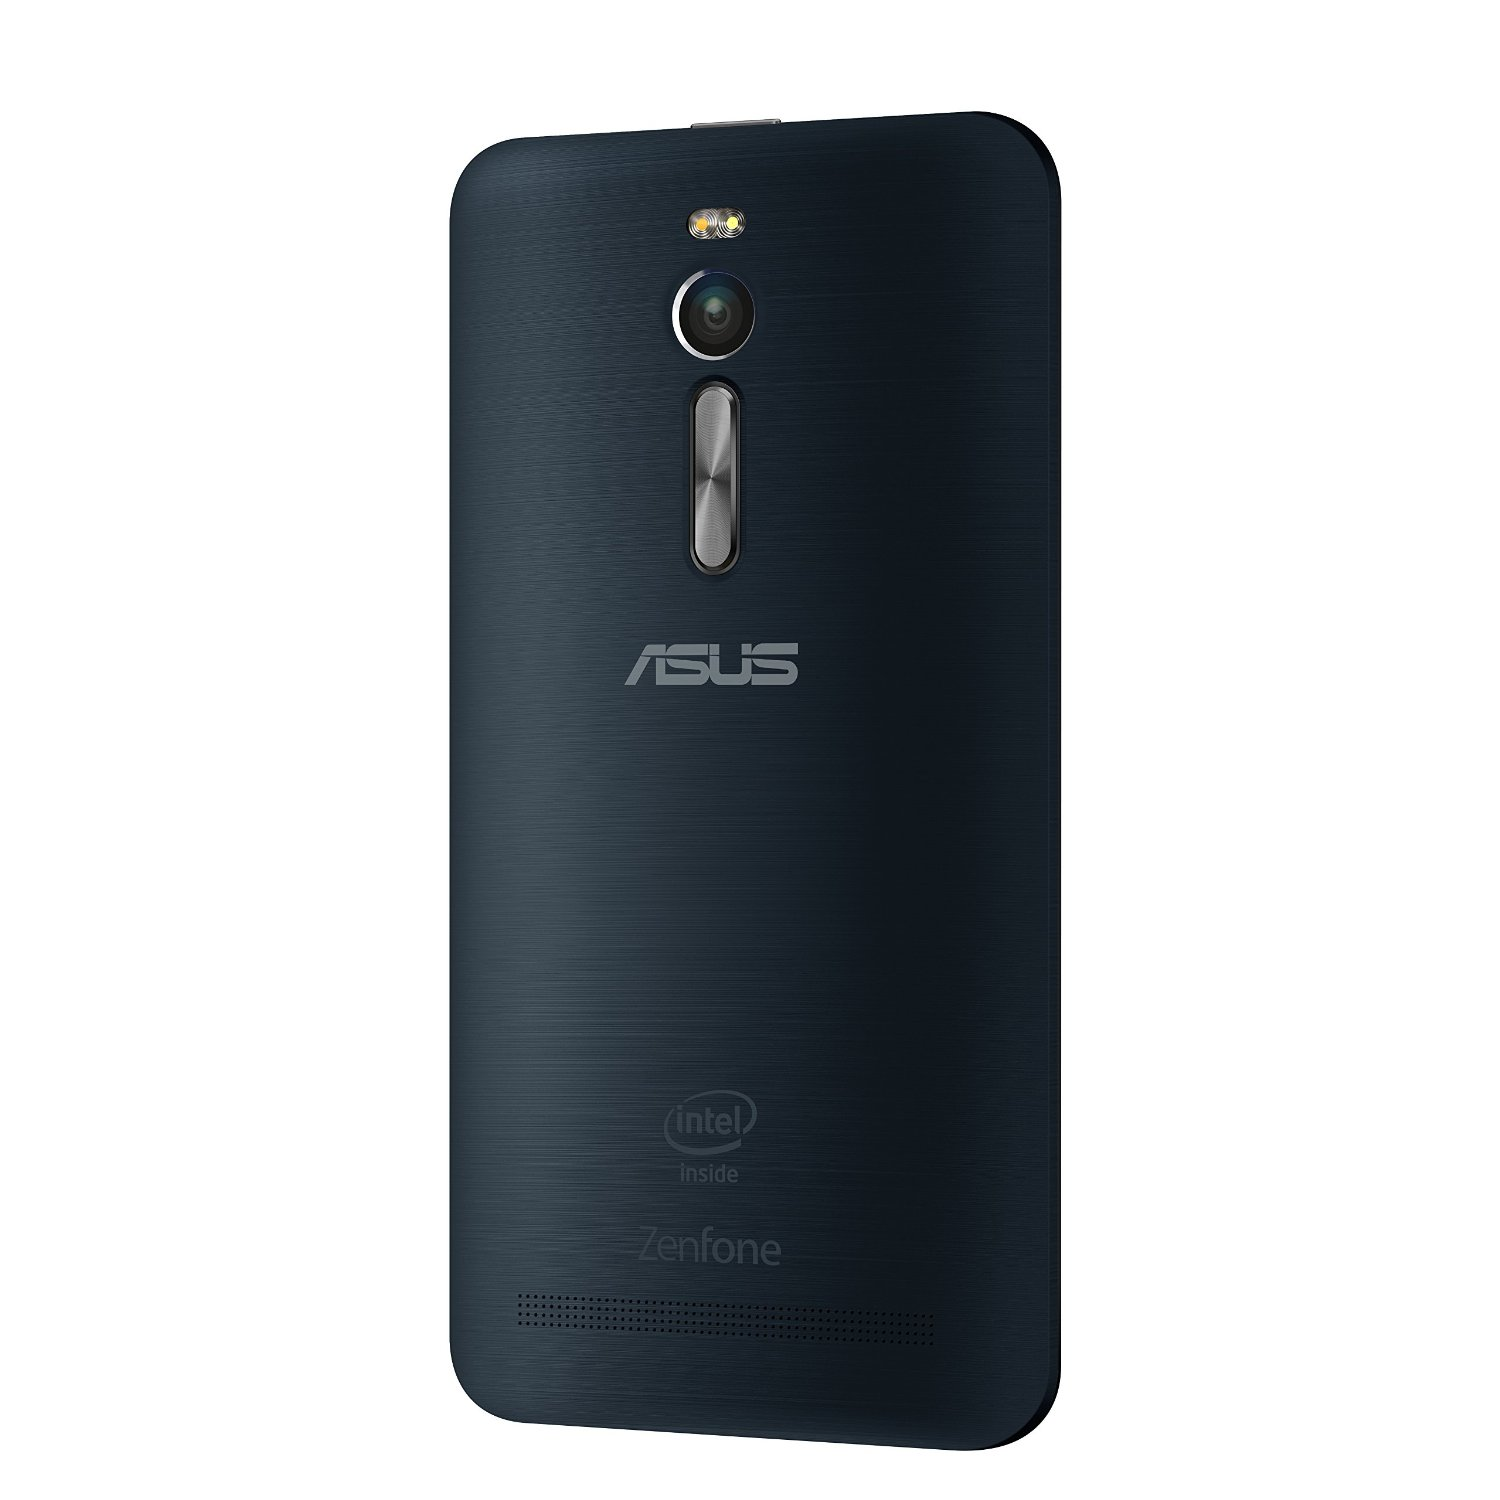 pj-Asus-Zenfone-2-ZE551ML-32gb-2